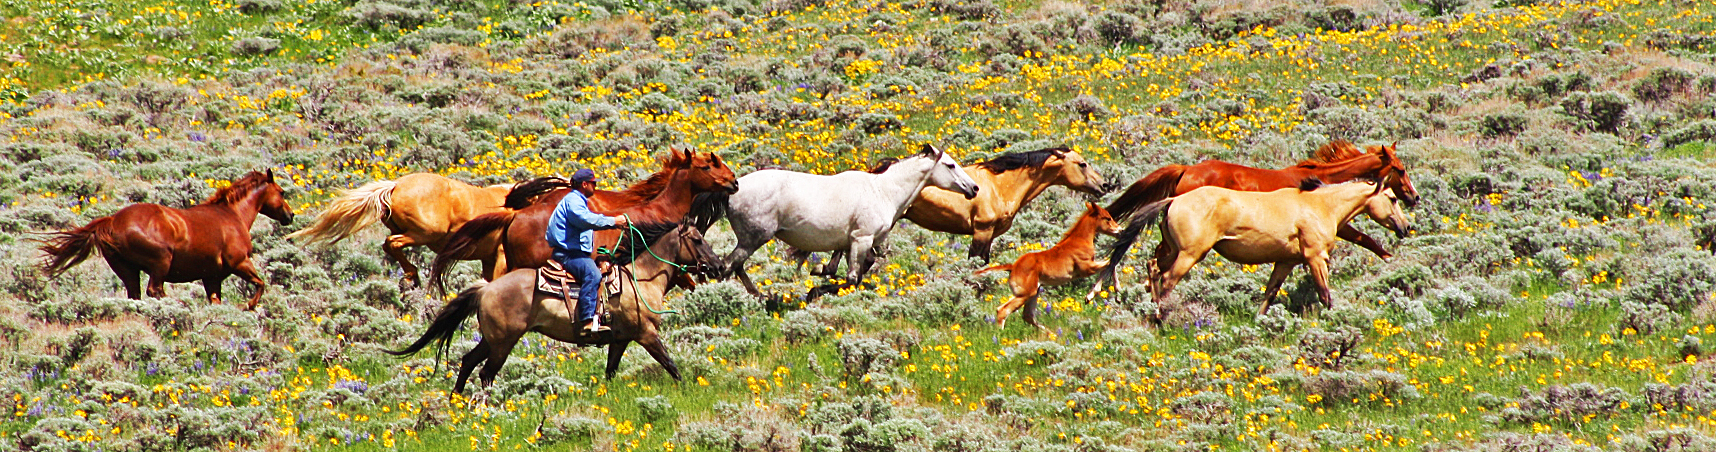 Moving the mountain horses